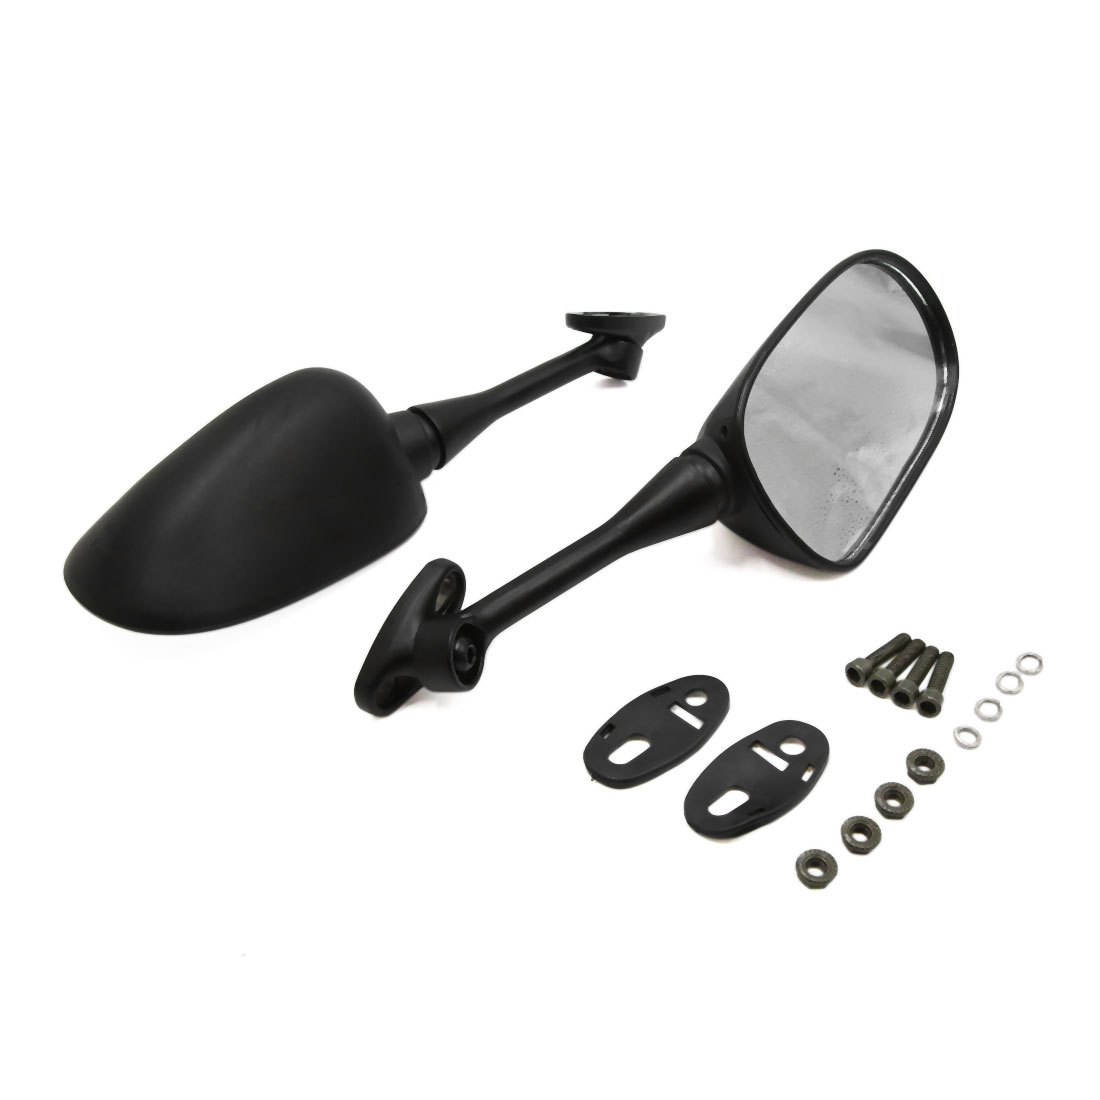 2pcs Black Motorcycle Motorbike Modified Rearview Reversing Reflective Mirrors - image 4 of 4